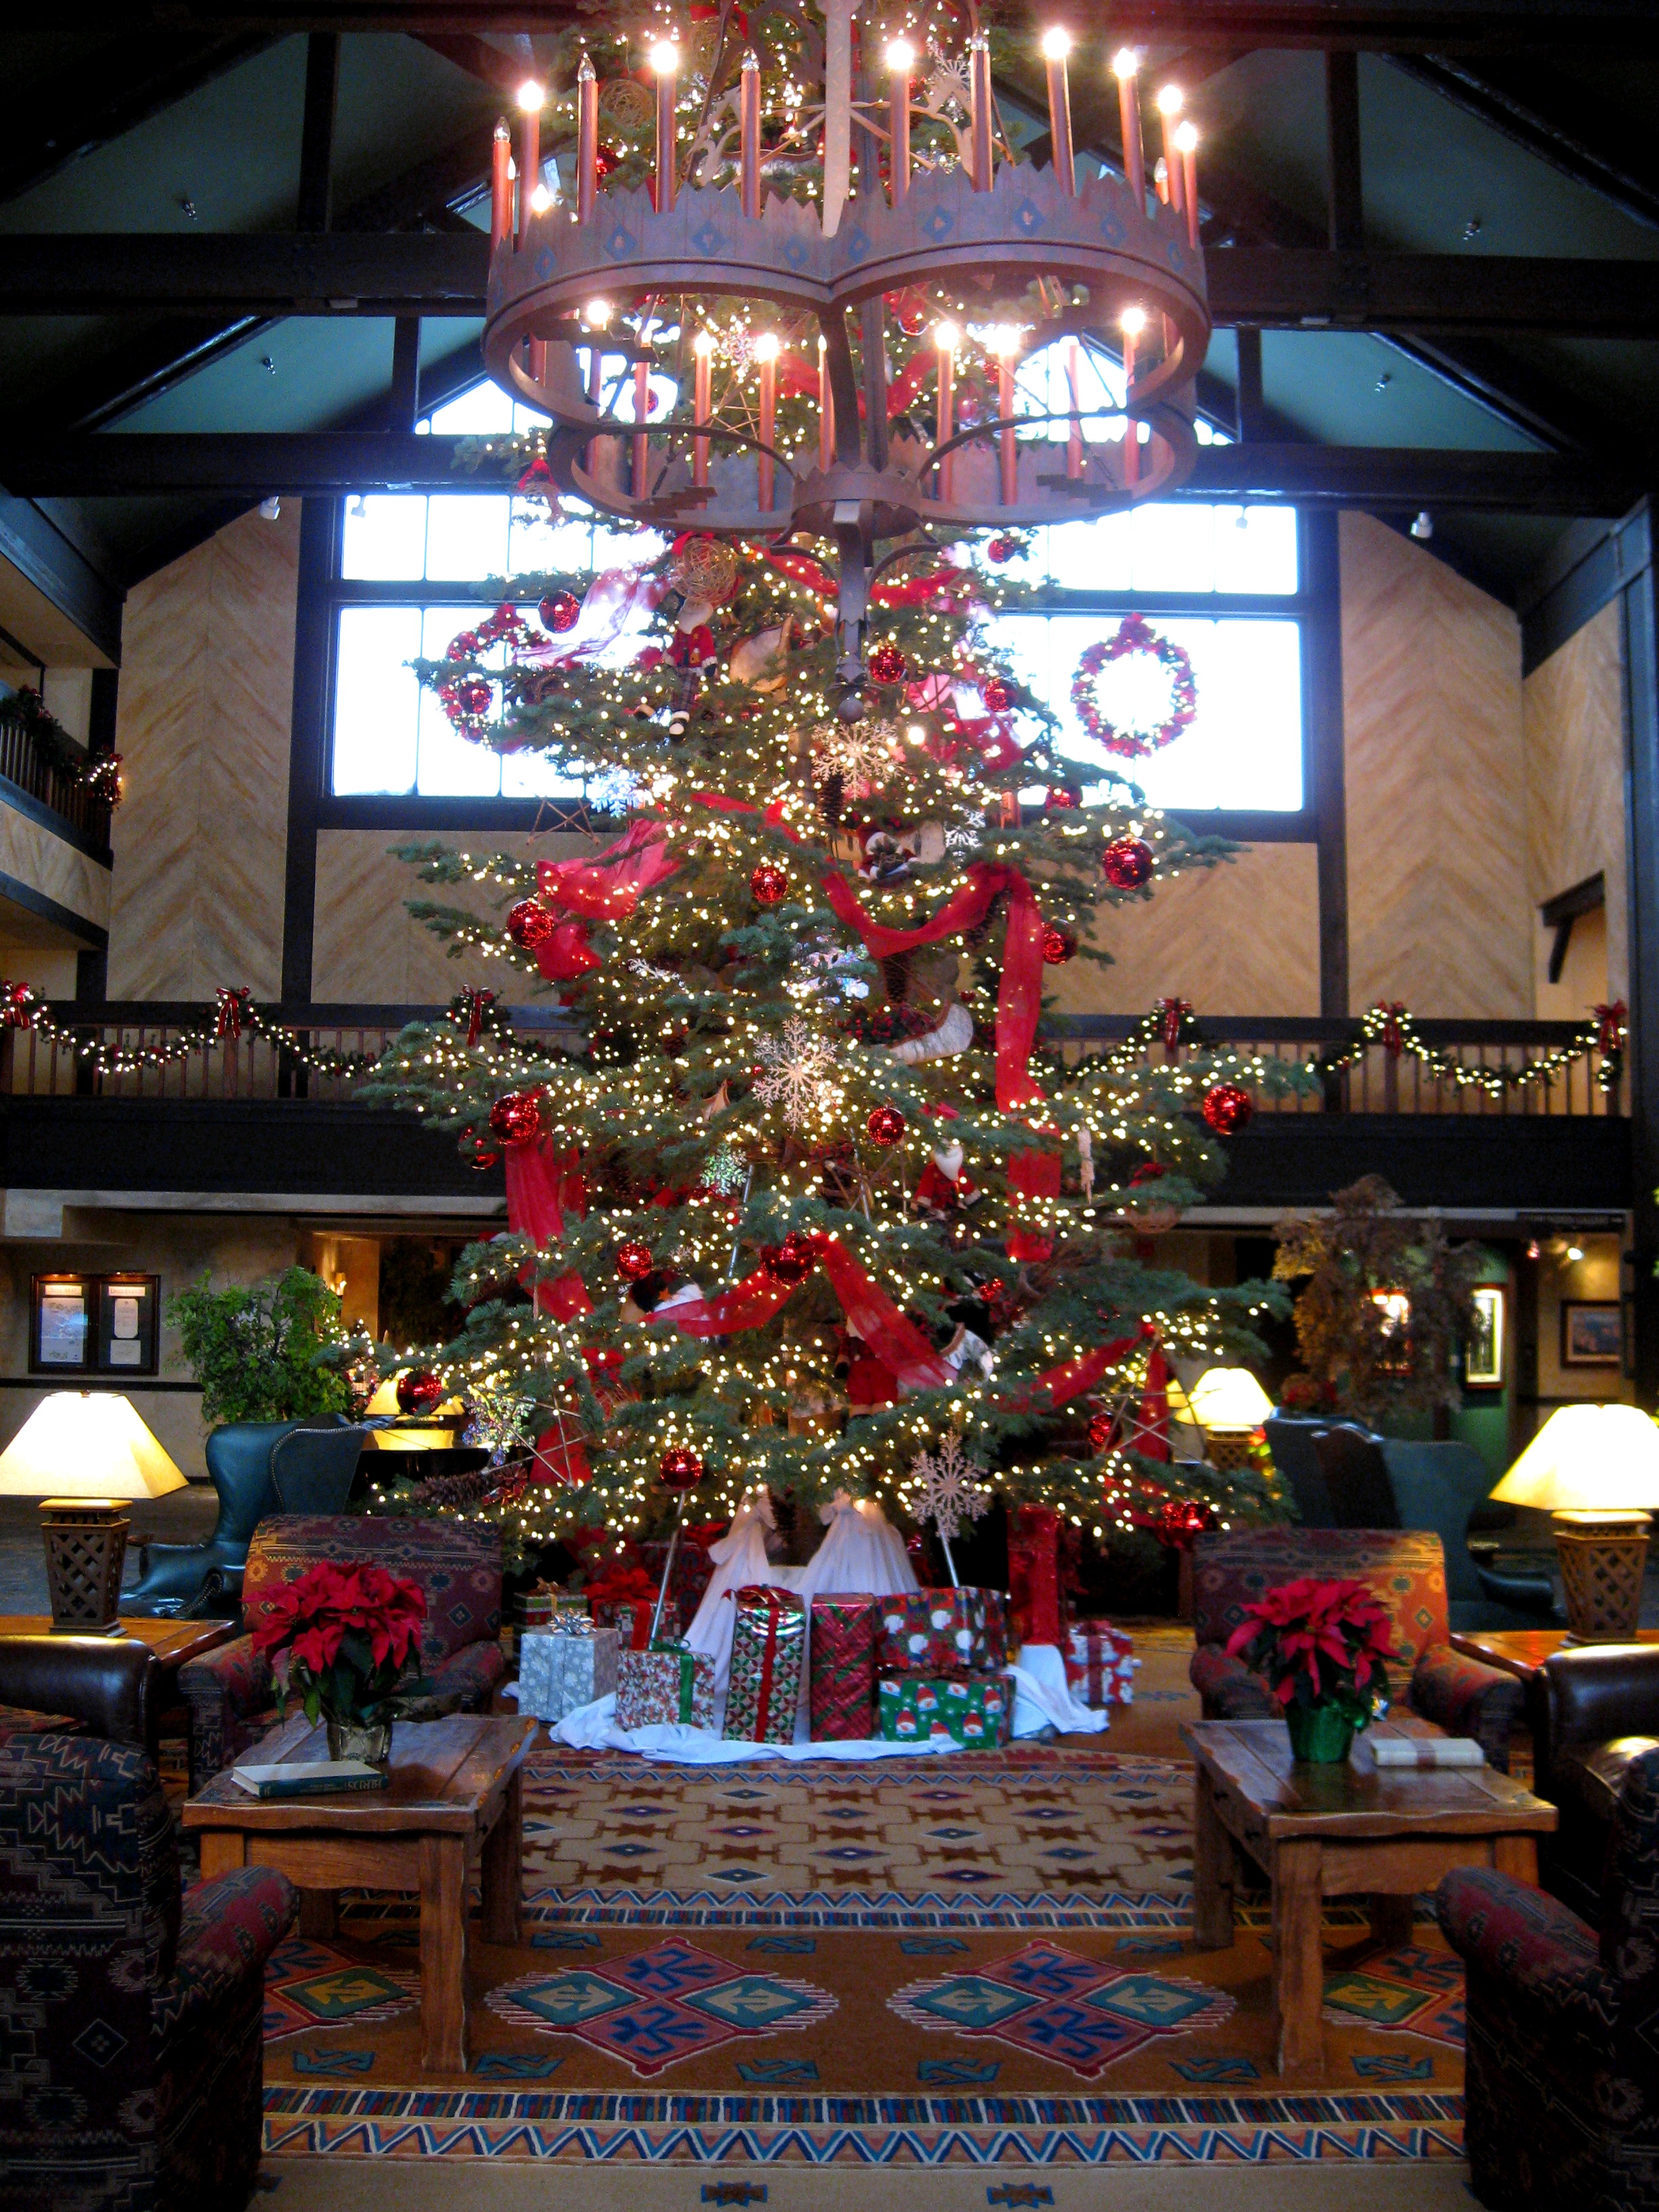 The Christmas Tree Inn